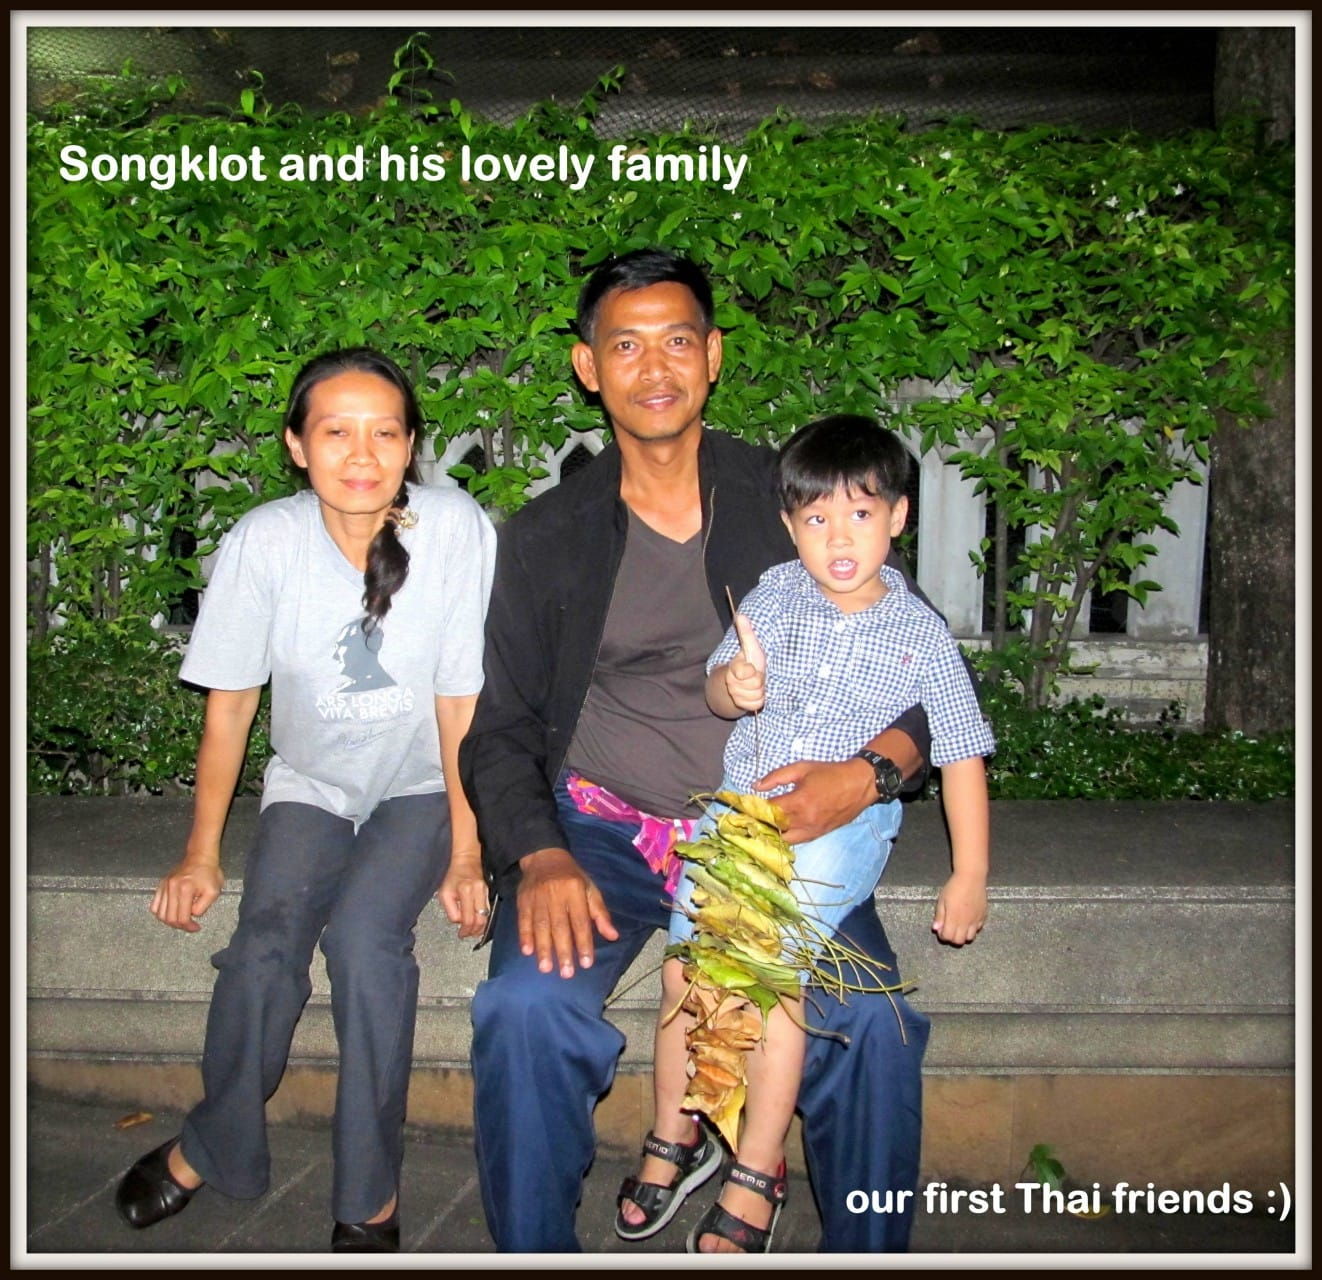 thai-culture-respecting-cultures-when-traveling